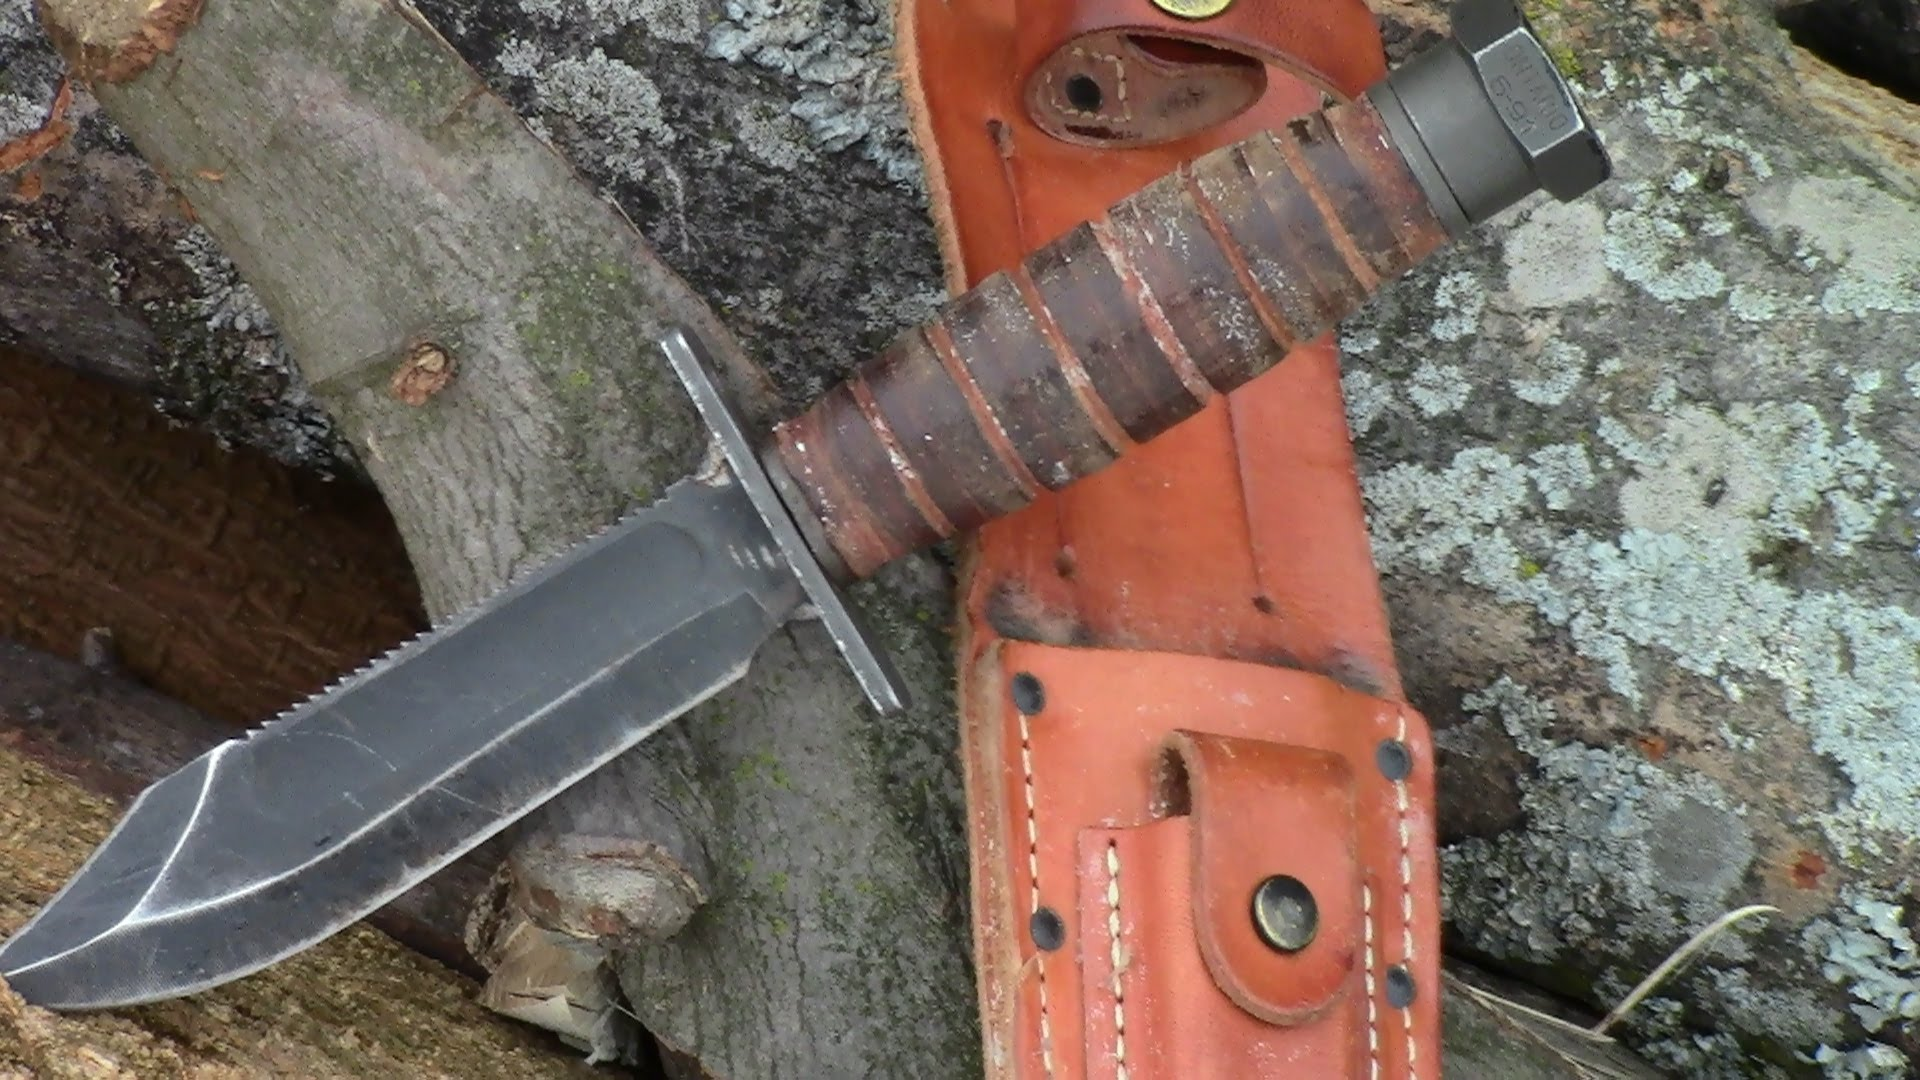 Ontario Air Force Survival Knife Full Review By